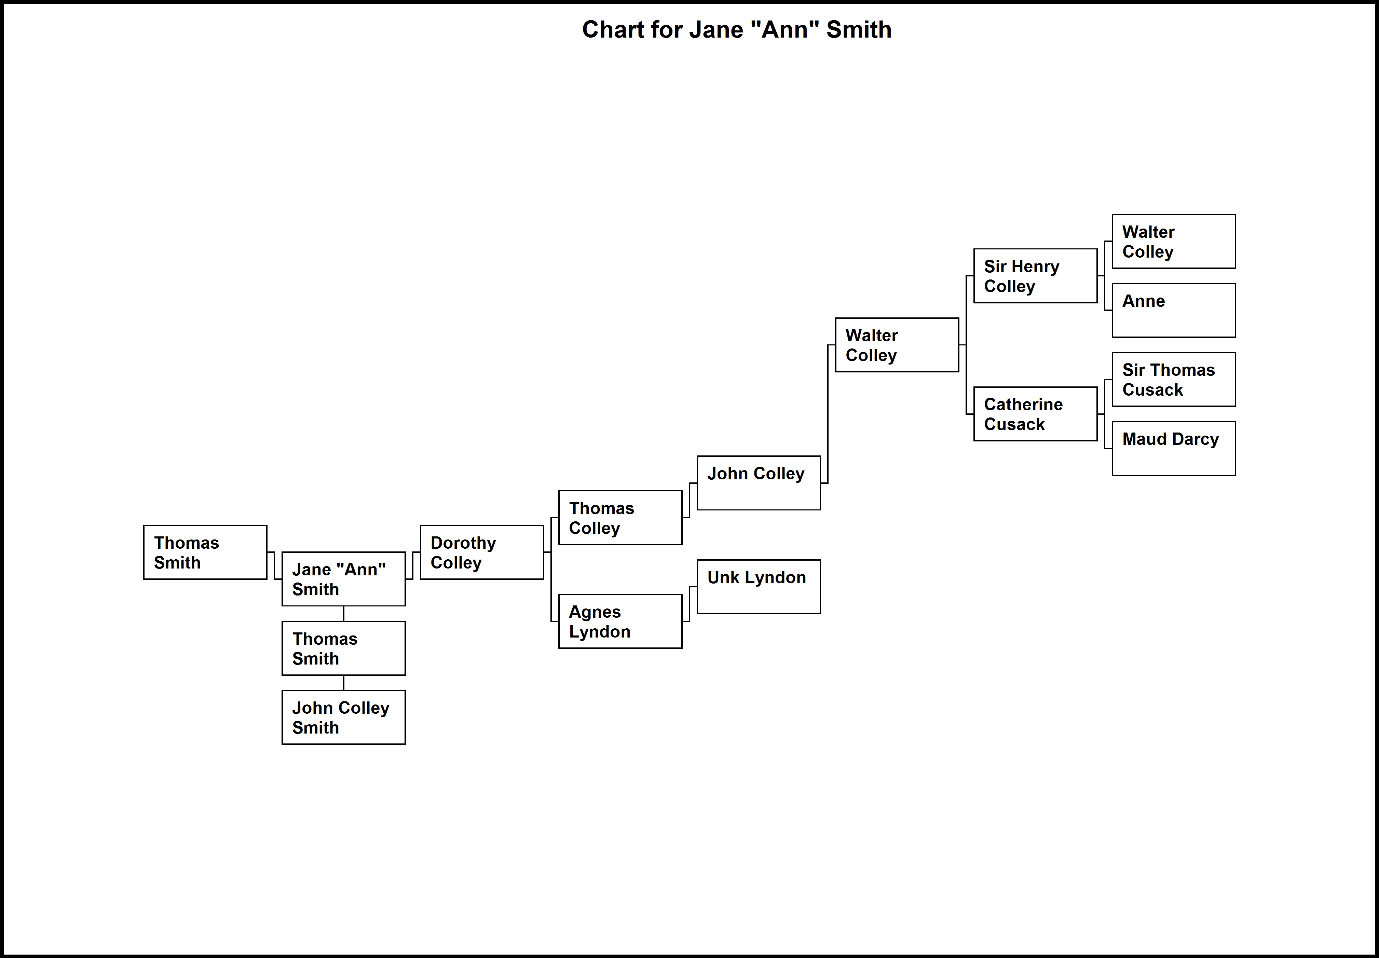 C:\Users\Virginia Rundle\Dropbox\VR\Ancestry Stuff\Kilpatrick\Chart for Jane Ann Smith.bmp